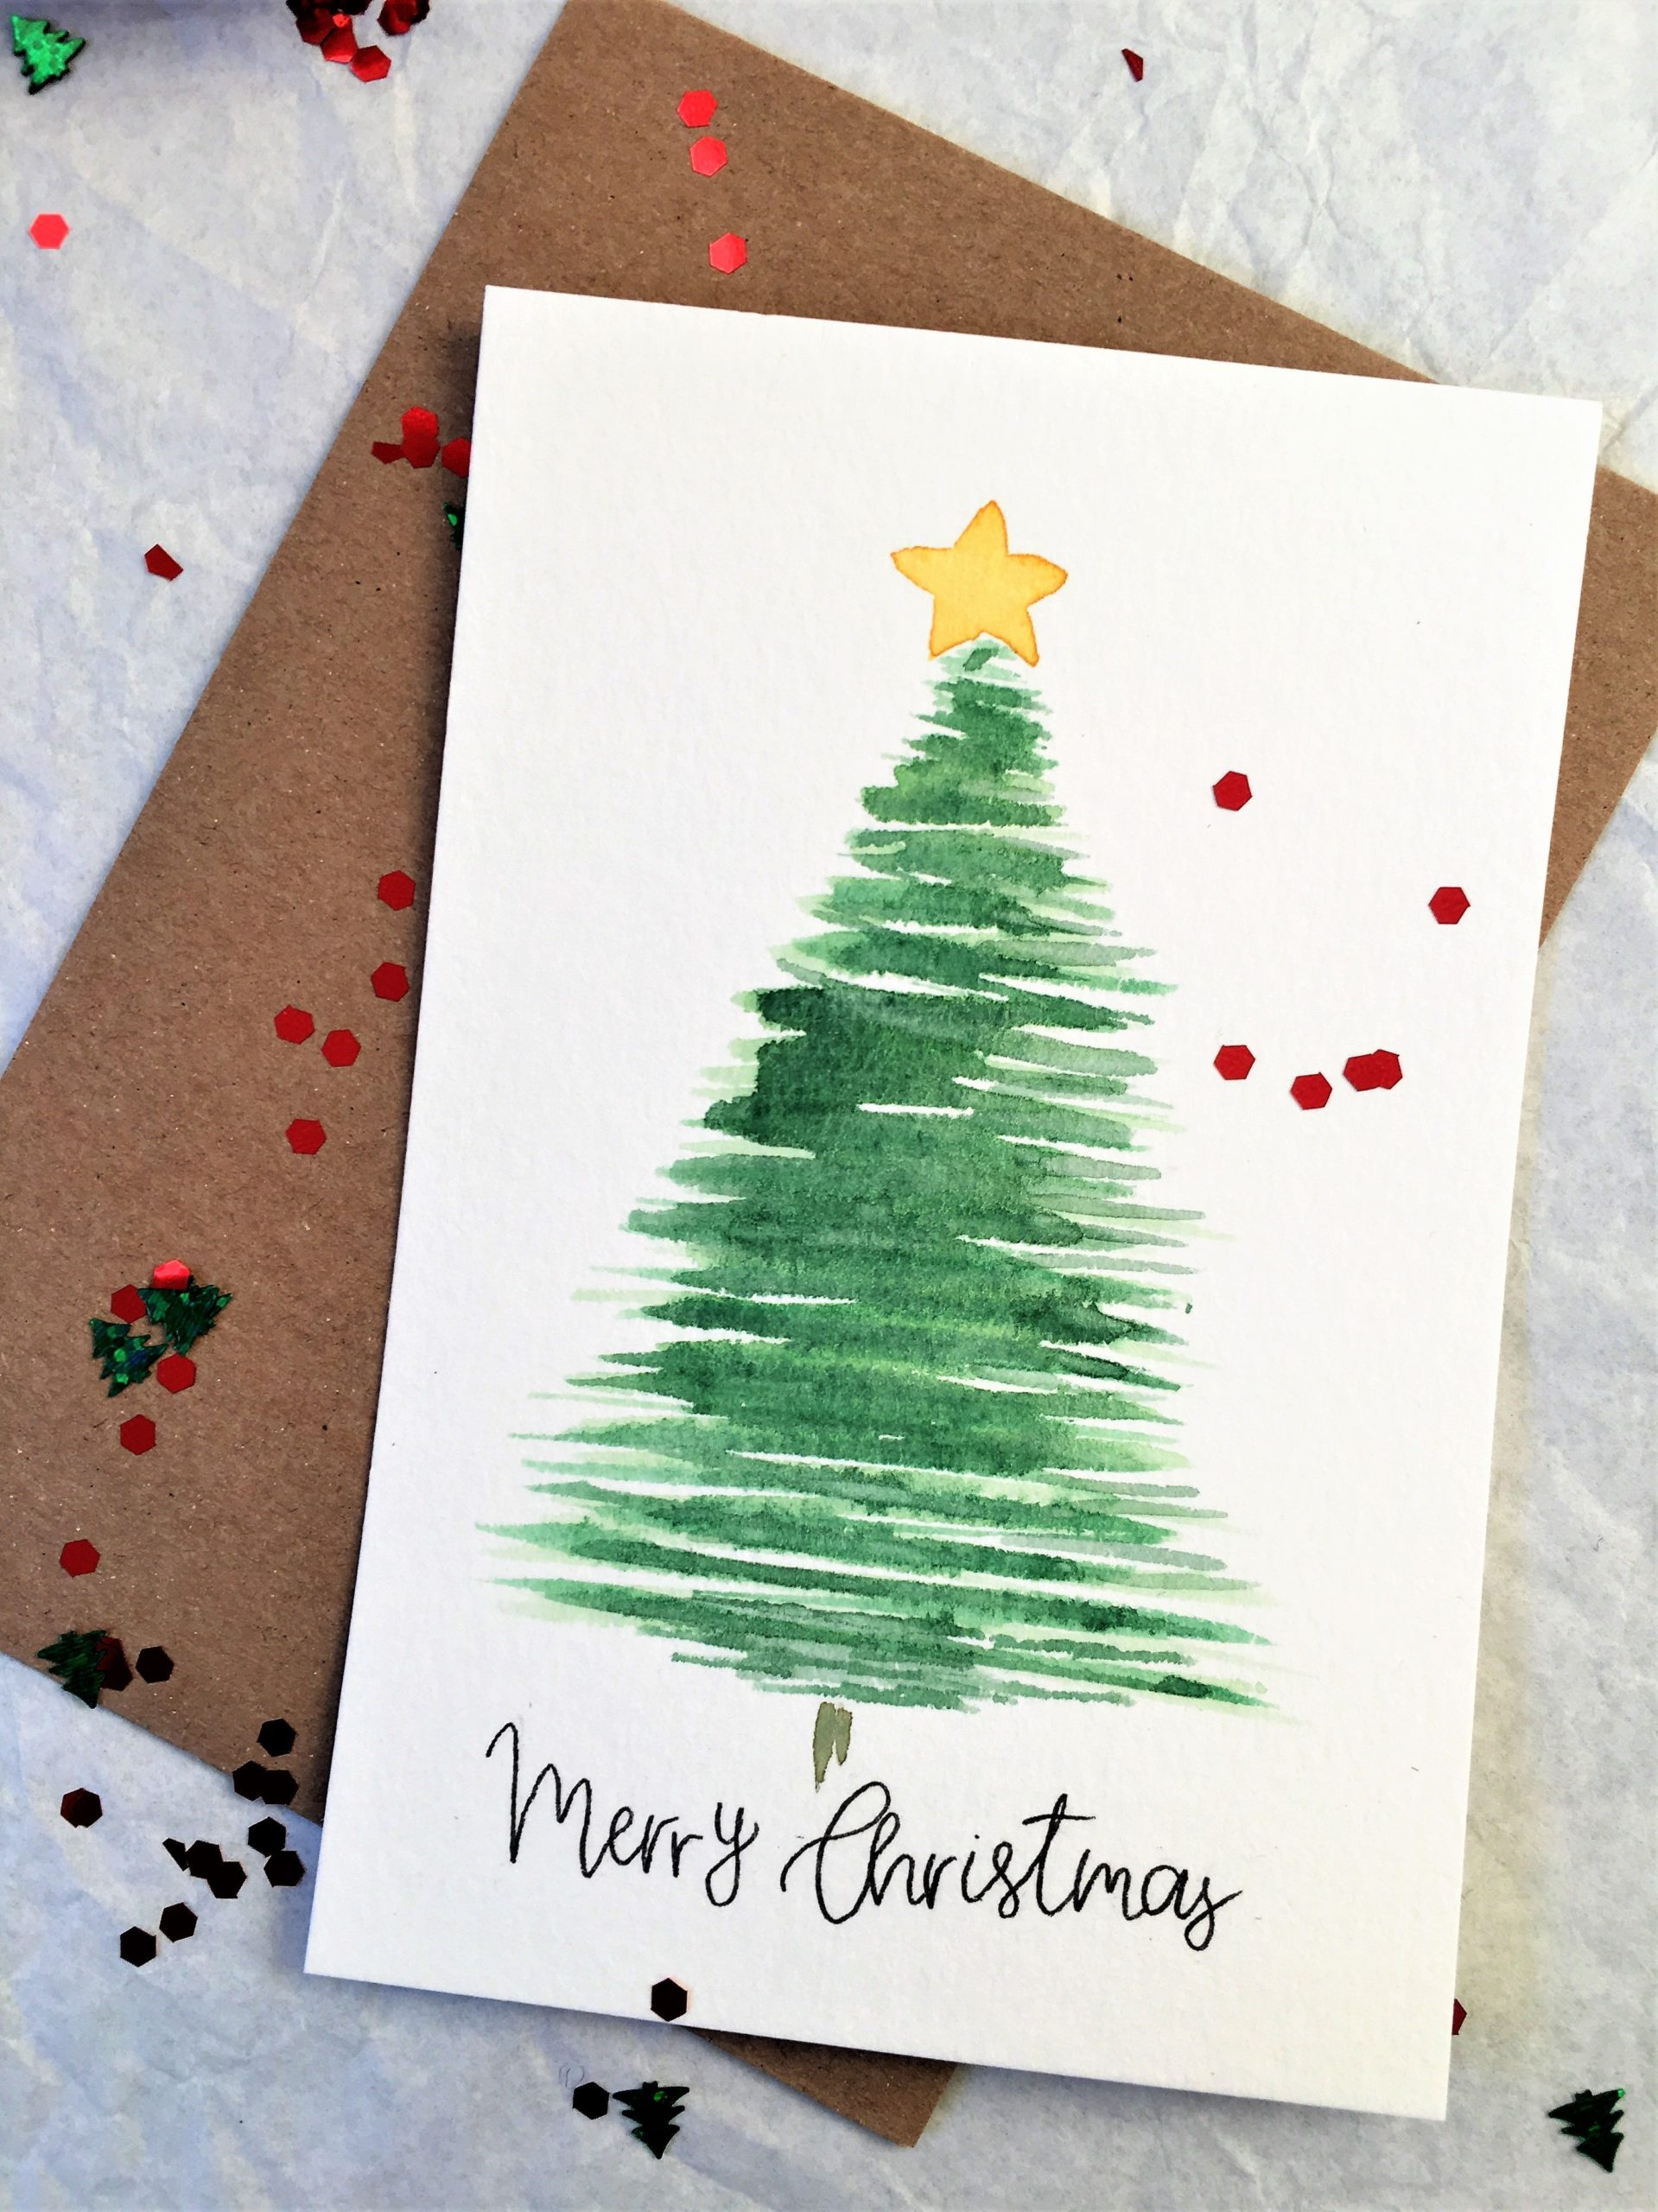 Set Of 5 Cards Merry Christmas Greeting Card Handmade Card Watercolor Christmas Tree Card Traditional Simple Minimalist Christmas Card 6x4 2021